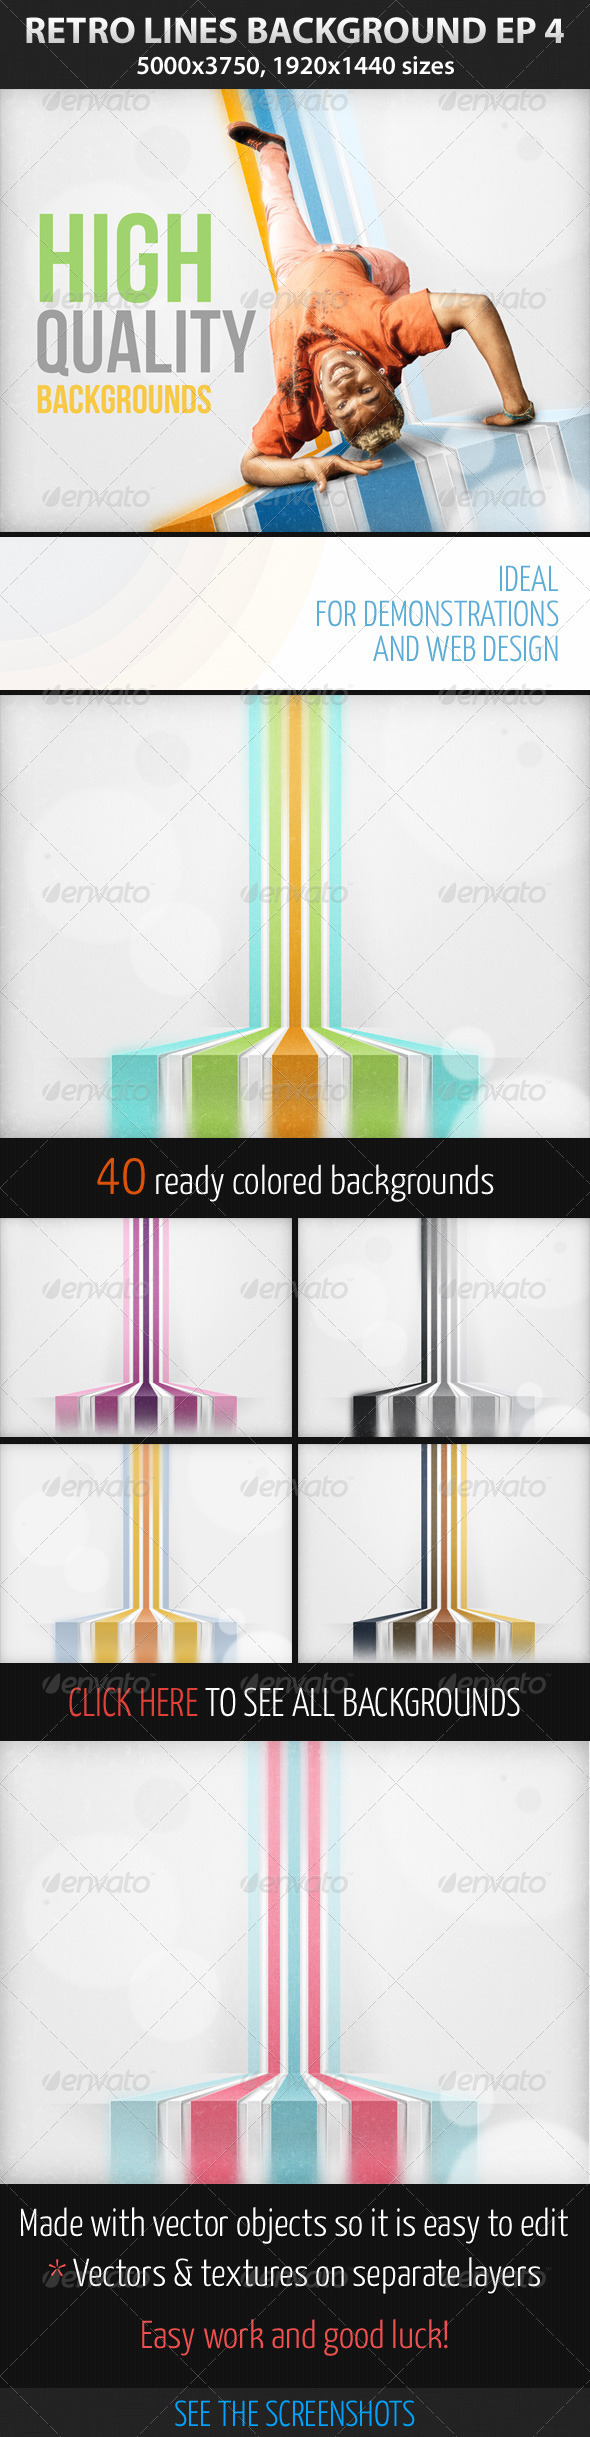 GraphicRiver Retro Lines Background ep 4 2868910